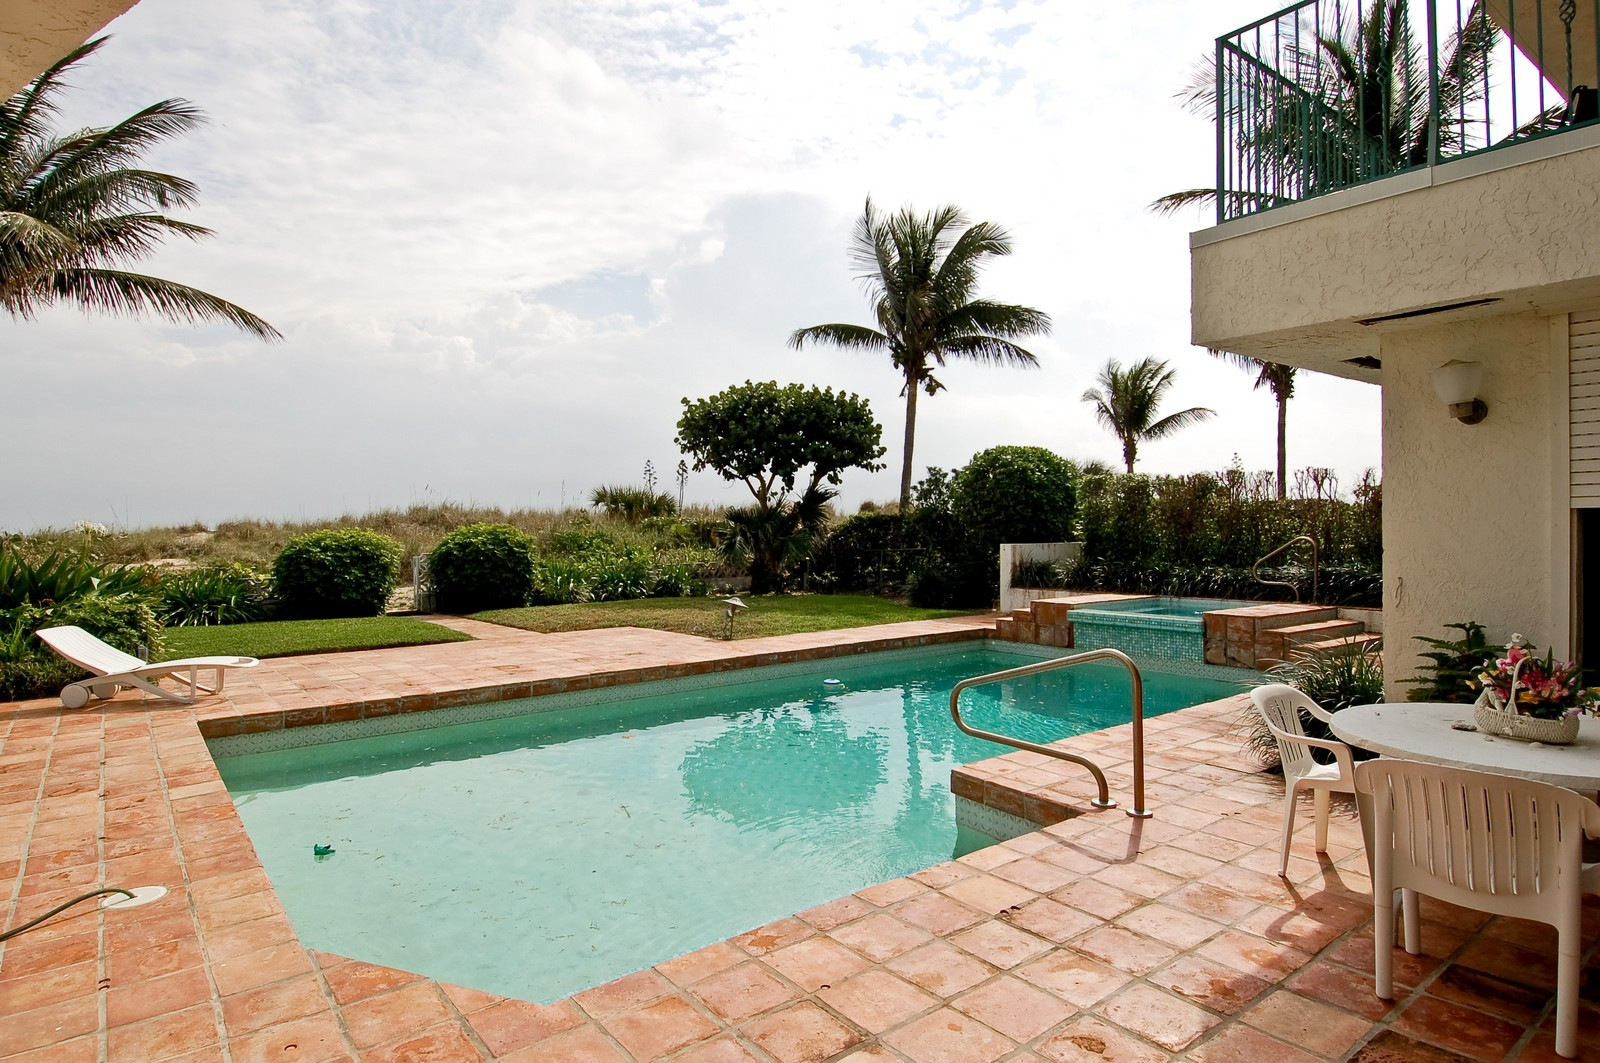 Real Estate Photography - 2004 Bay Dr, Pompano Beach, FL, 33062 - Pool